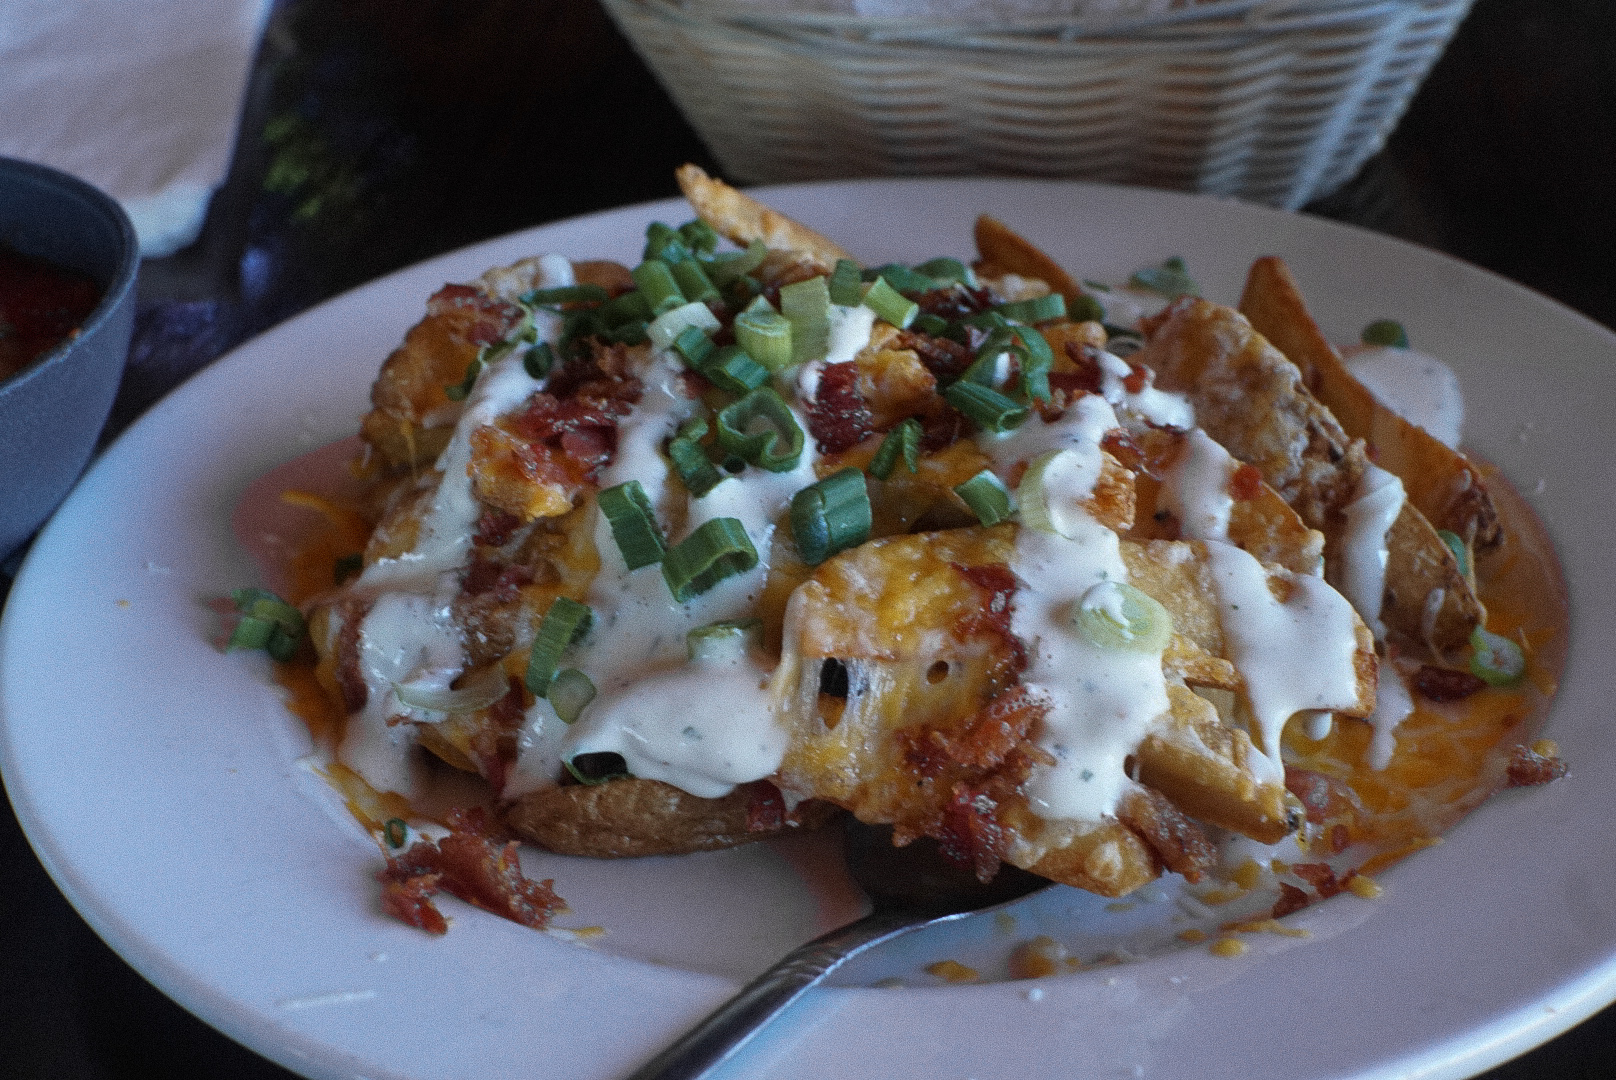 Cheese Fries = Jack + Cheddar + Bacon Bits + Ranch + Green Onions